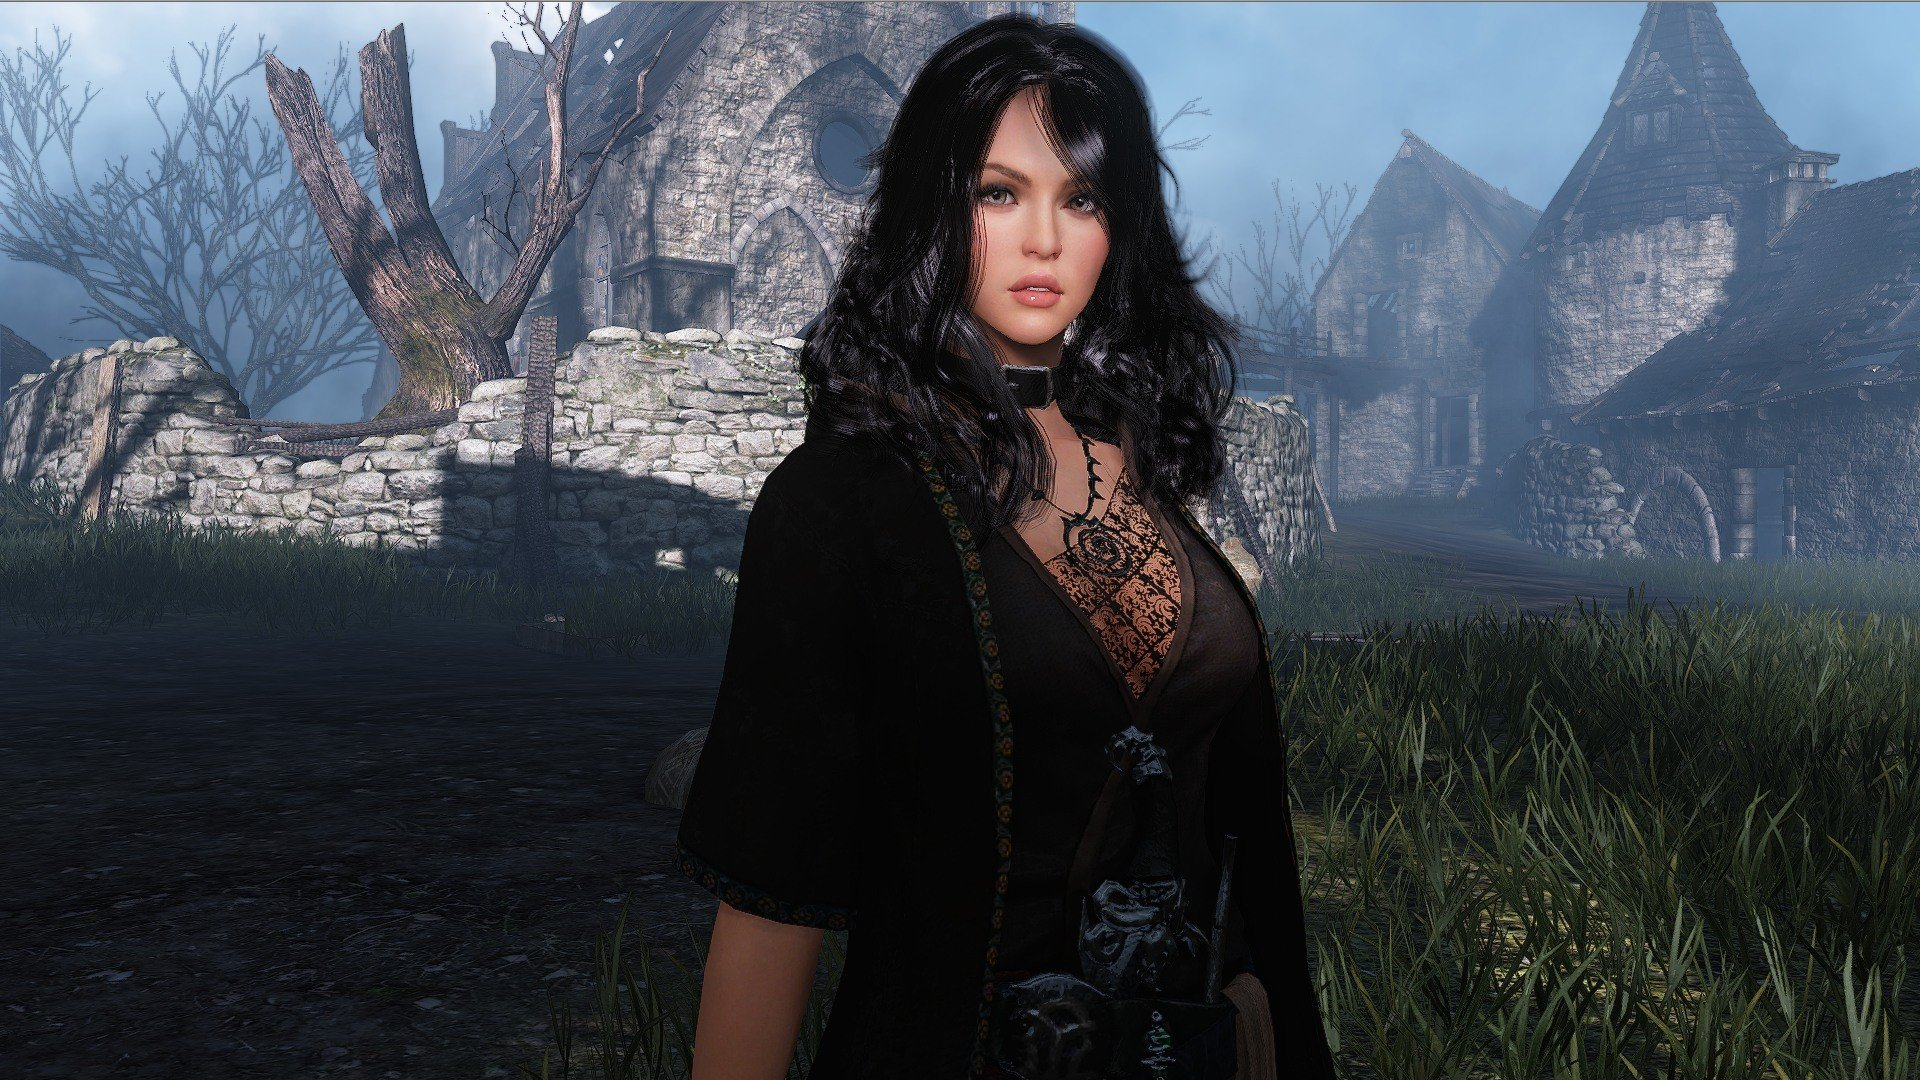 brunettes women mage video games RPG screenshots fantasy art wizards MMO MMORPG role playing game Black Desert Online